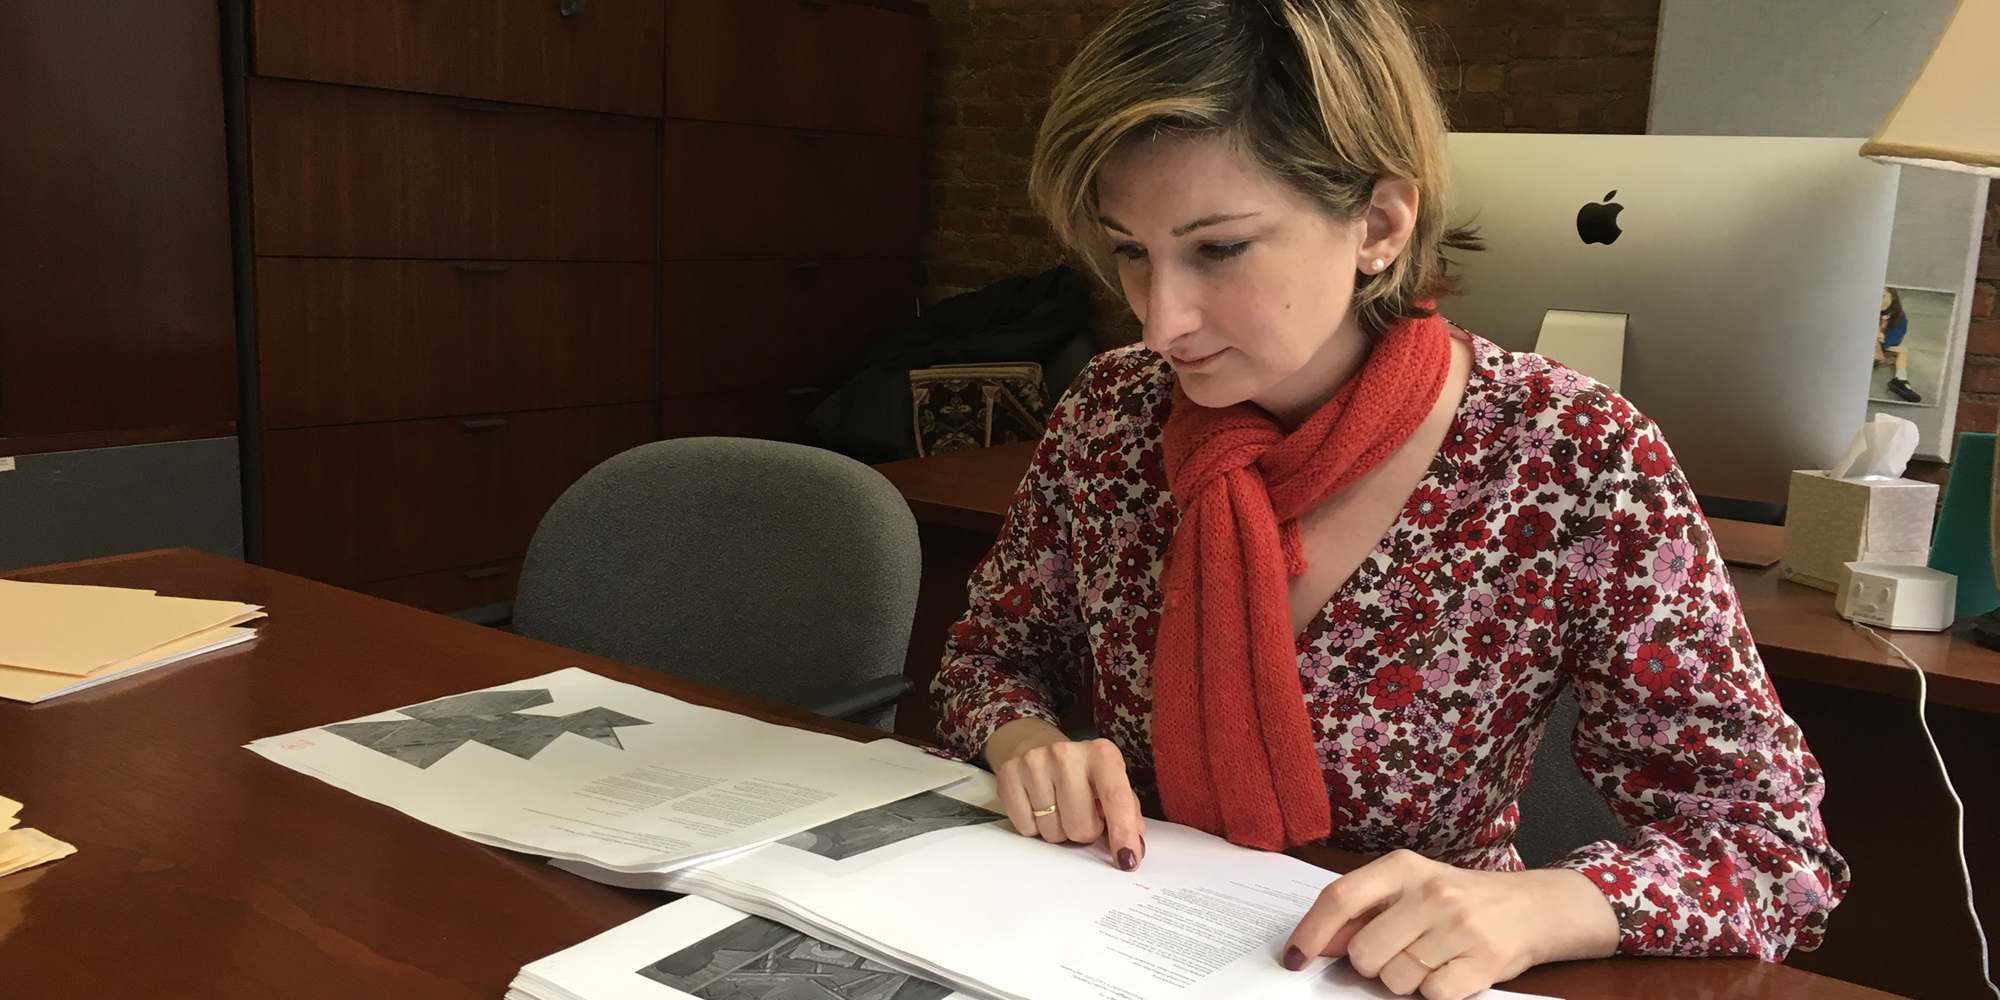 Elizabeth Gorayeb '97 examines papers in her office.